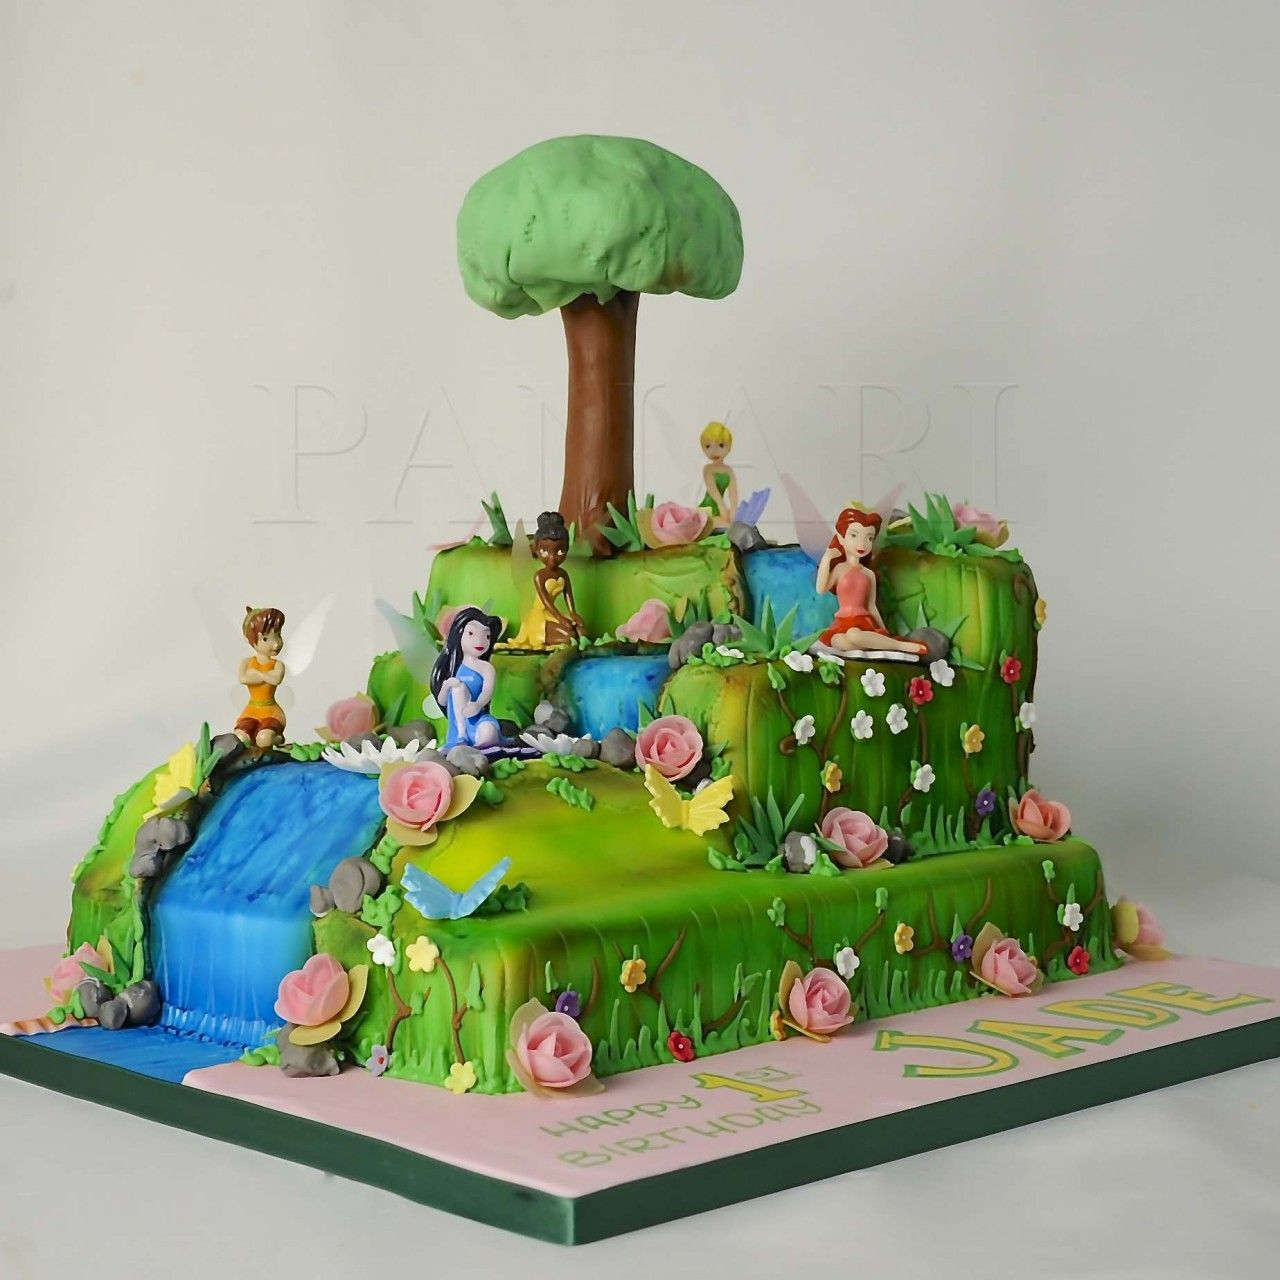 TINKERBELLS ENCHANTED FOREST CAKE CI0527 Panari Cakes Novelty